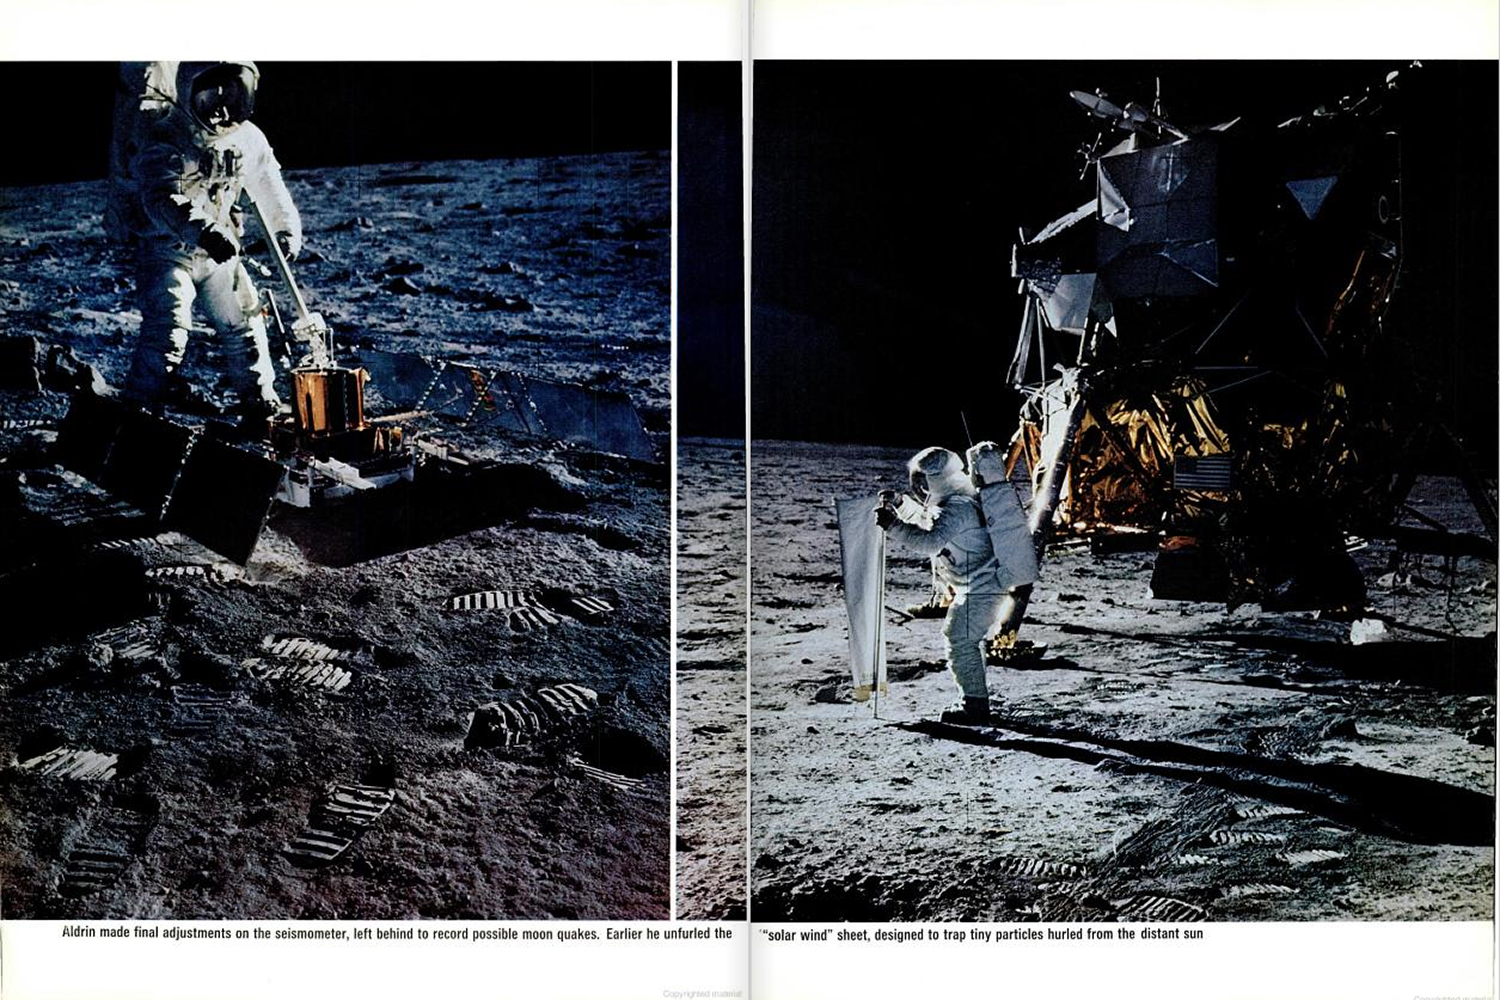 "<b>LIFE magazine Special Edition, August 11, 1969.</b> ""Adrin made final adjustments to the seisometer, left behind to monitor possible moon quakes. Earlier he unfurled the 'solar wind sheet,' designed to trap tiny particles hurled from the distant Sun."""